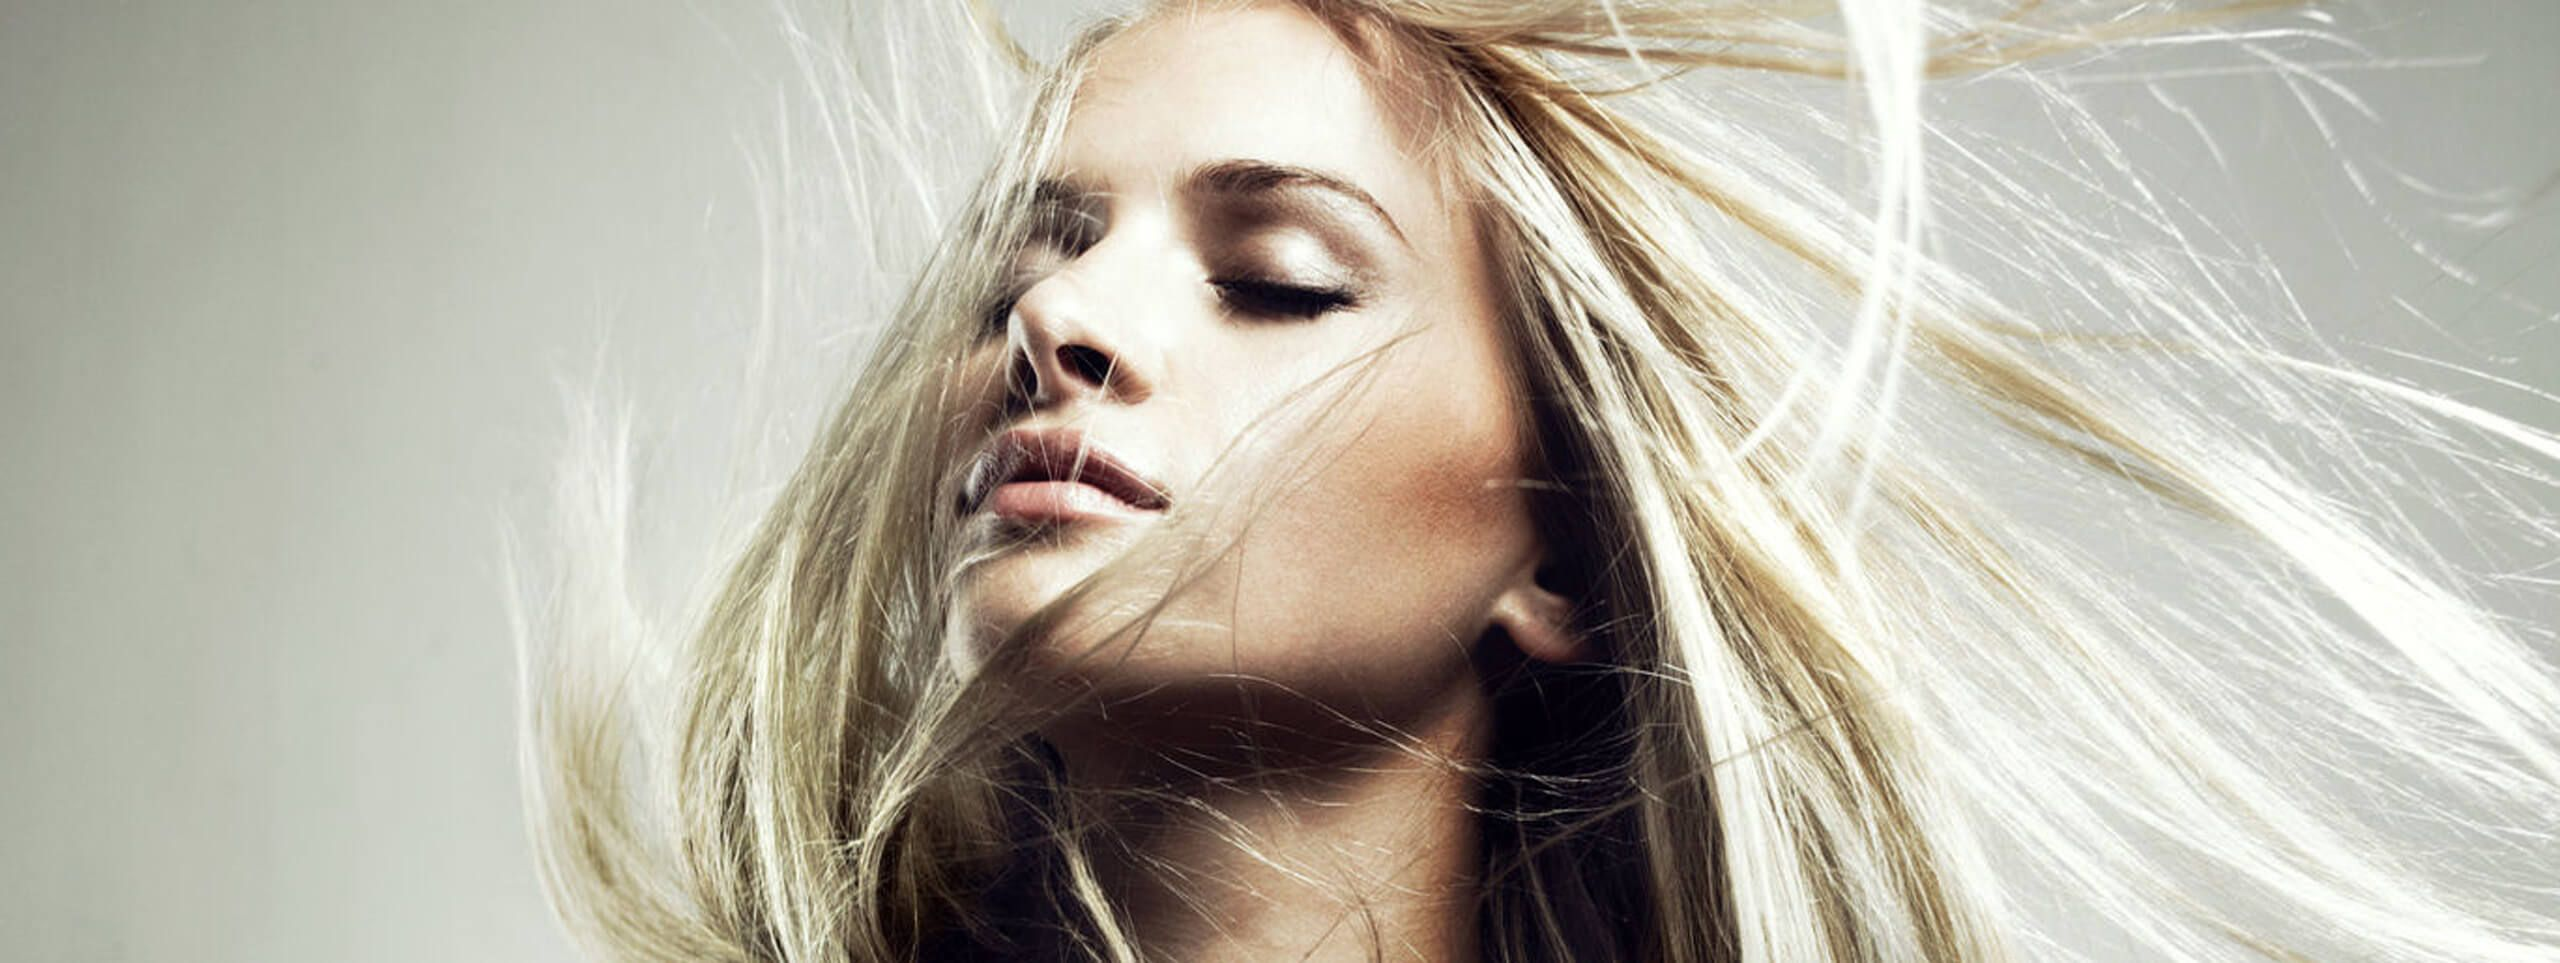 Woman with healthy blonde hair